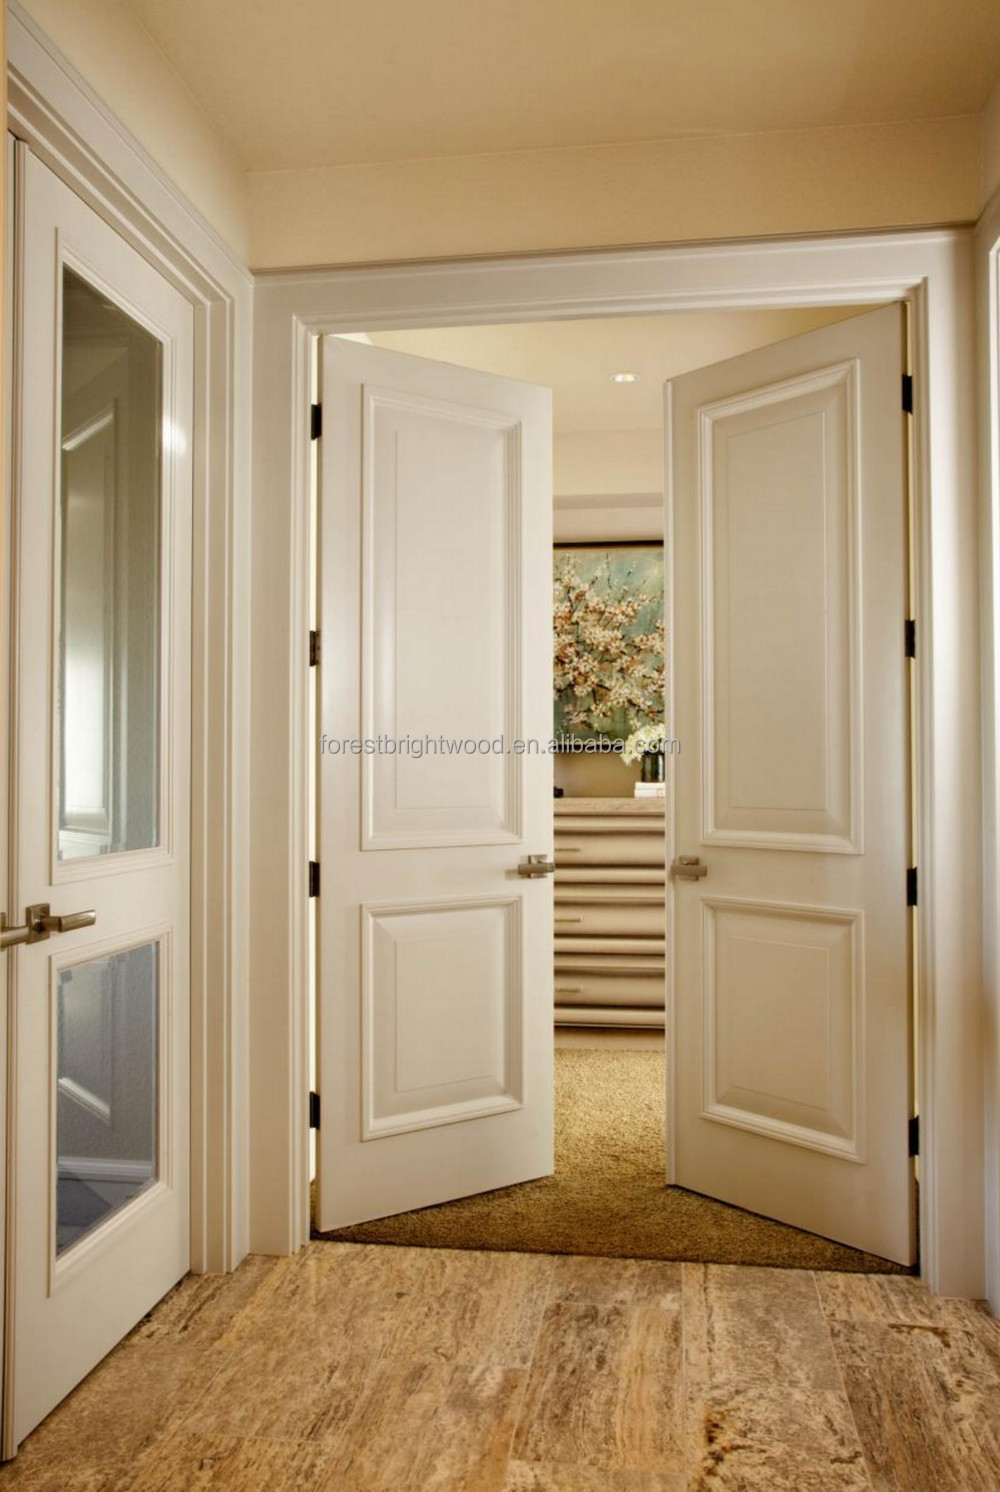 Prehung Interior Doors : Interior door prehung wood doors